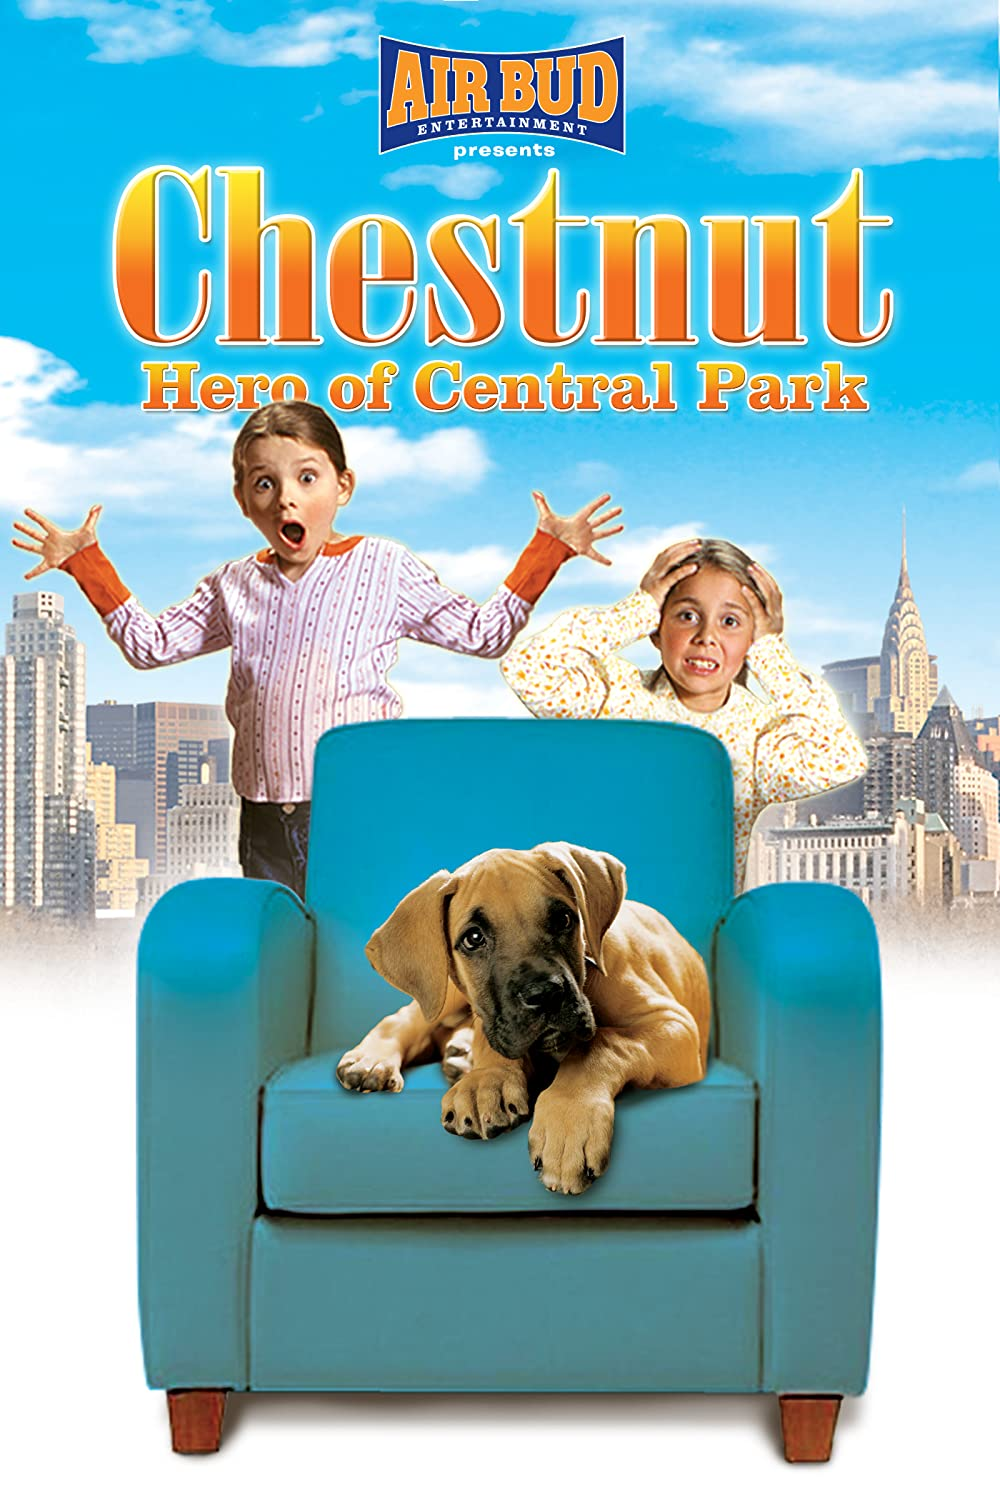 Chestnut: Hero of Central Park 2004 Hindi Dual Audio 720p HDRip ESubs 700MB Download